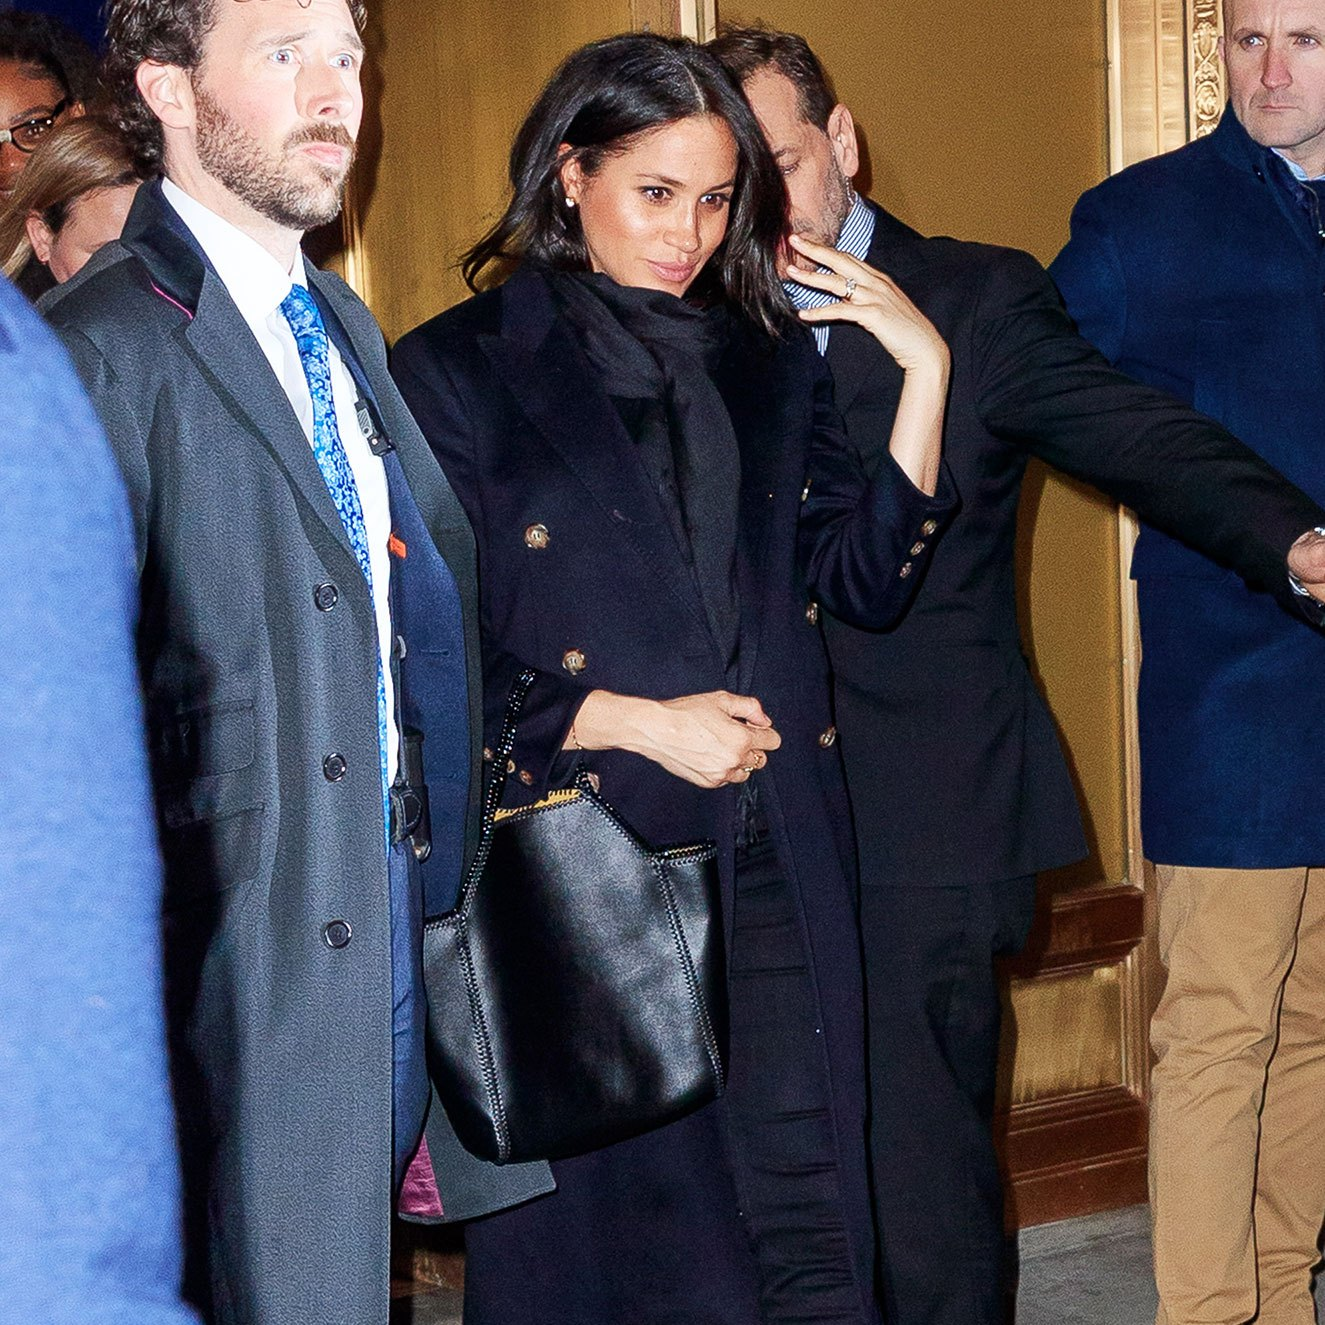 Duchess Meghan's Latest Outfit Has Her Looking Like a NYC Native meghan markle